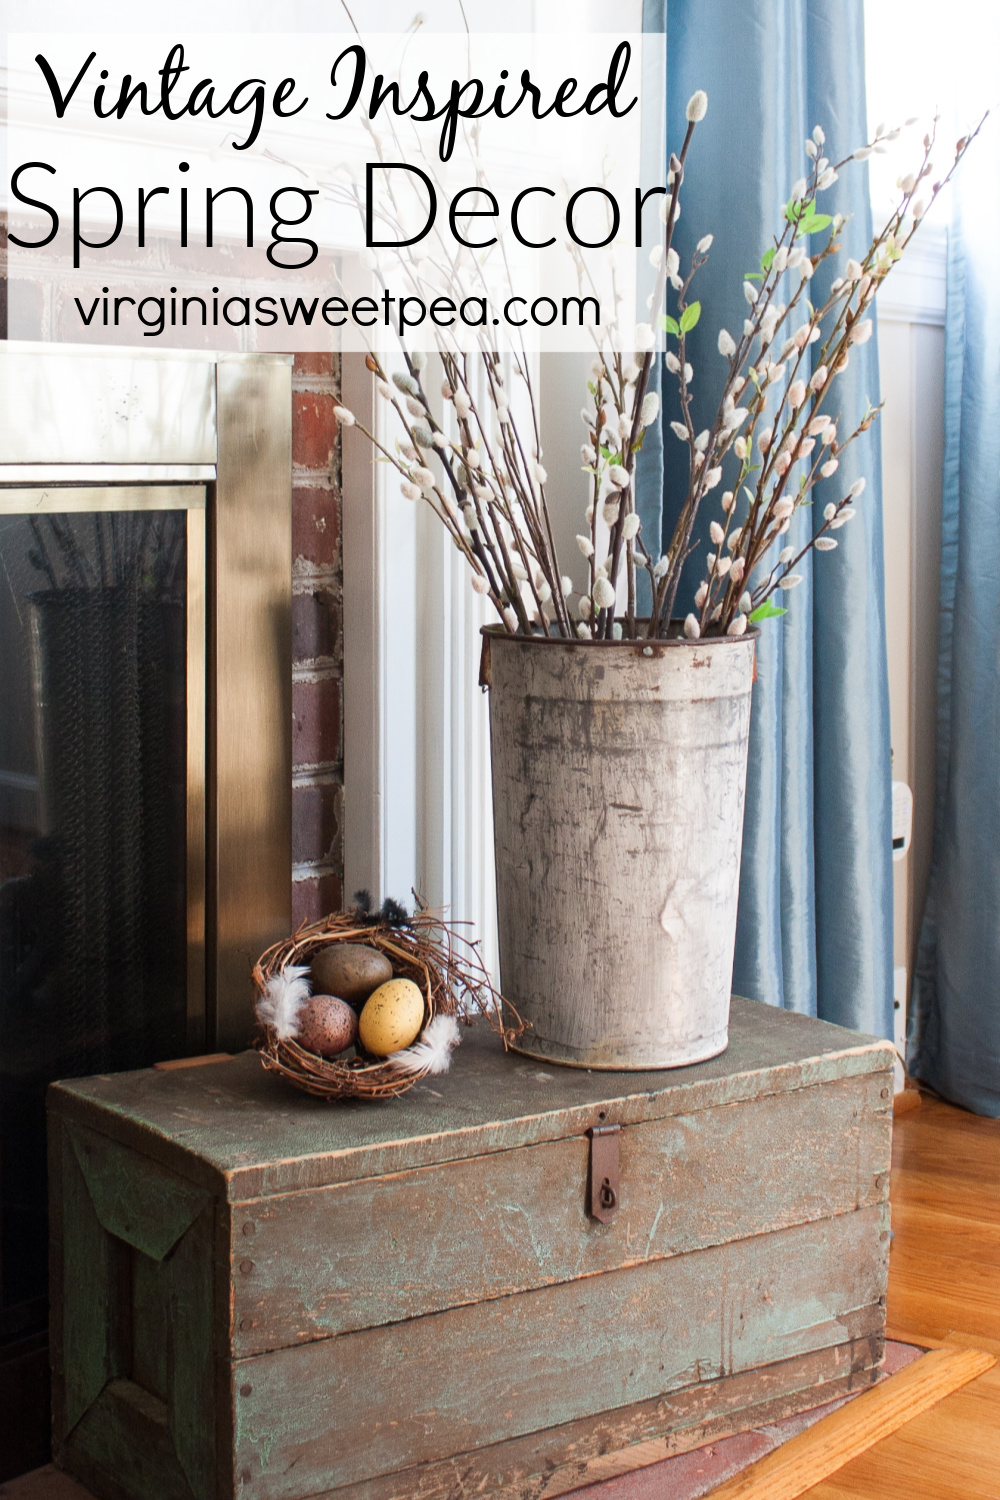 Vintage Inspired Spring Decor - A home is decorated for spring with vintage. #springdecor #springdecorating #vintagedecor via @spaula